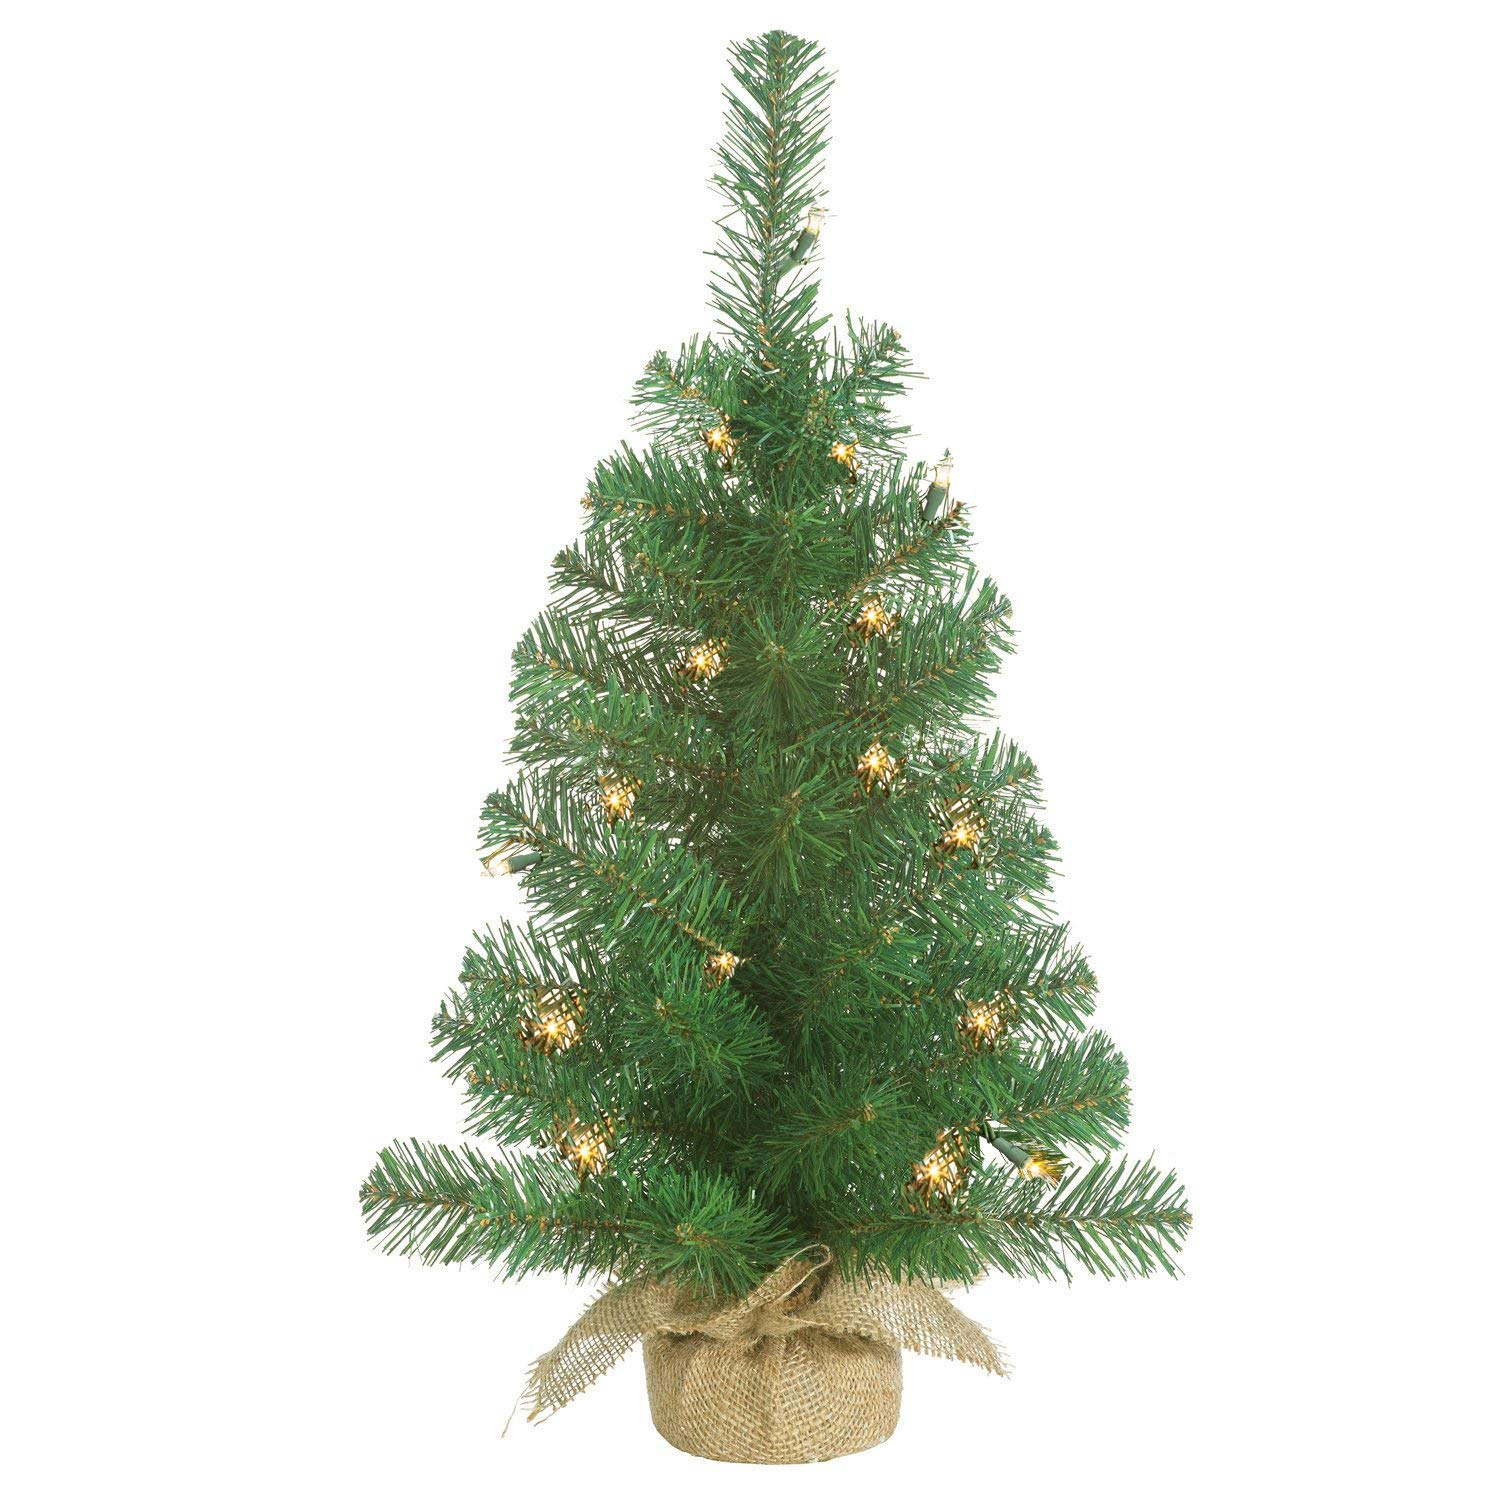 Lighted Christmas Pine Tree 24 Inches High with Battery Operated Timer and Warm White LED Lights - Burlap Wrapped Base- Artificial Pre-Lit Christmas Pine Tree - Indoor / Outdoor - Steady and Flashing by GER